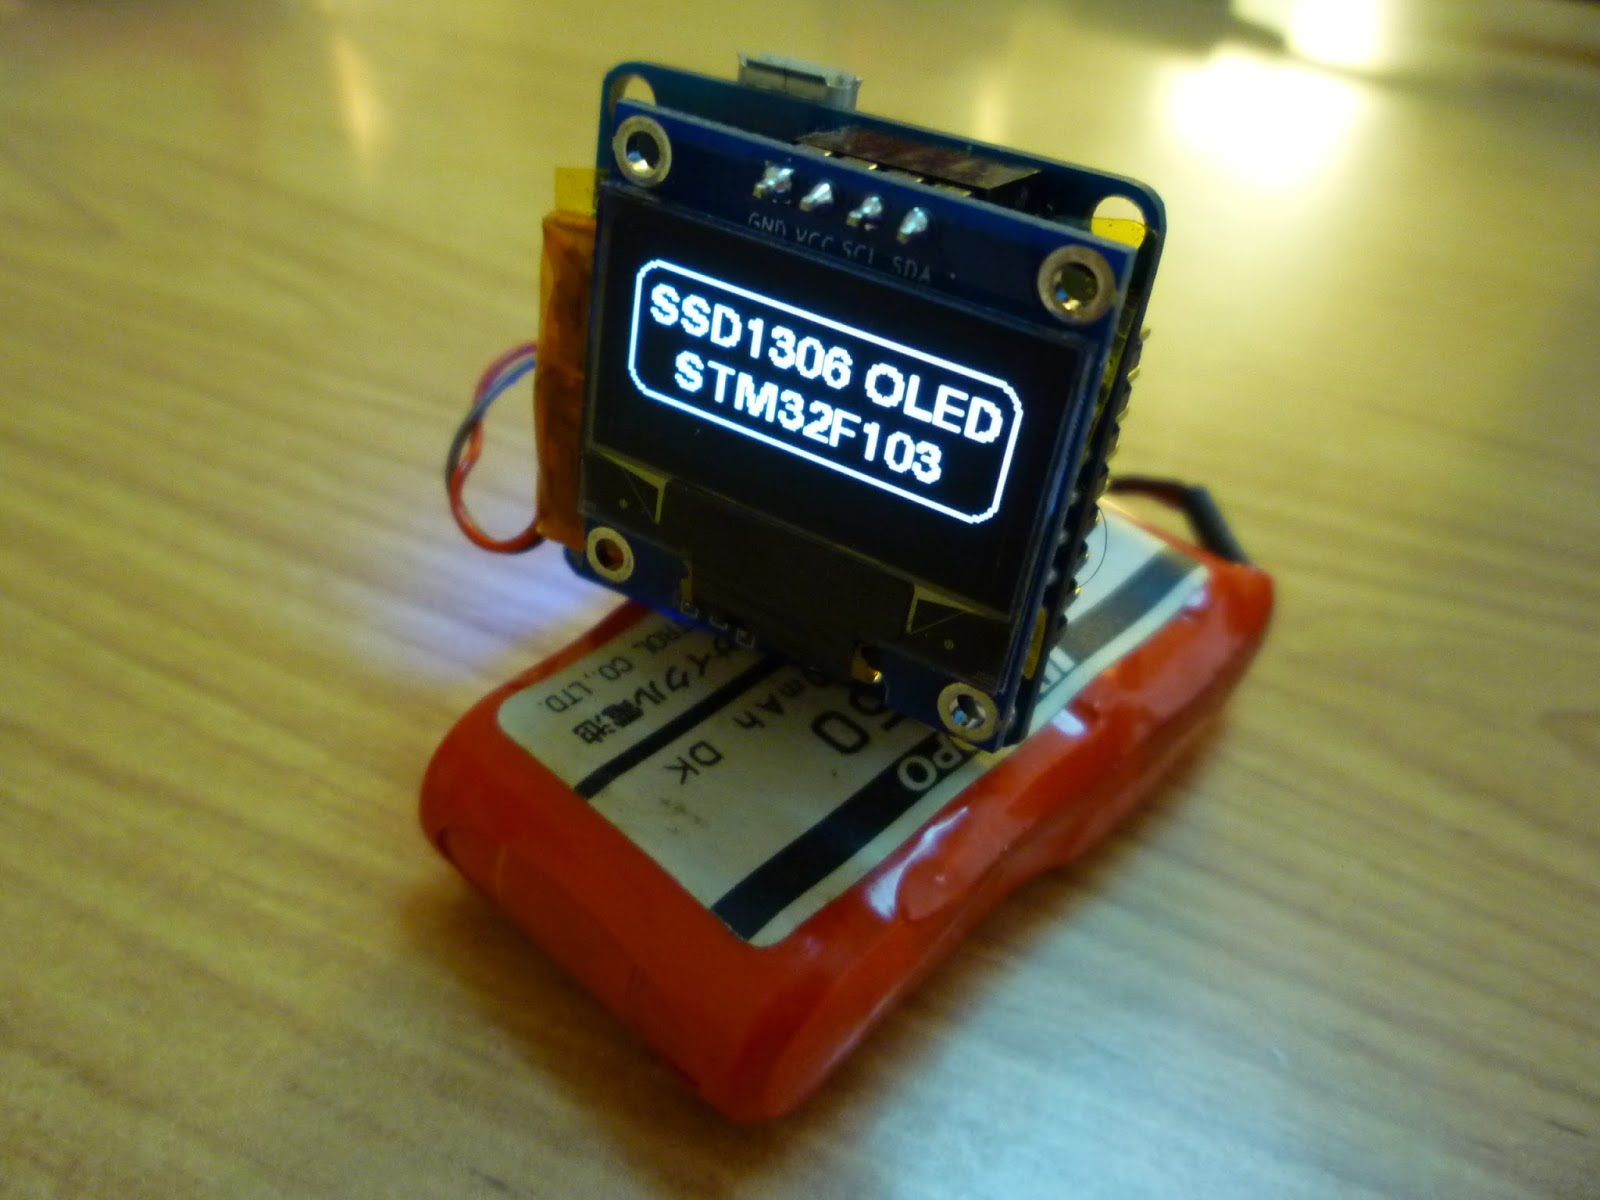 Aviator Ahmet: Connect an SSD1306 OLED display to your